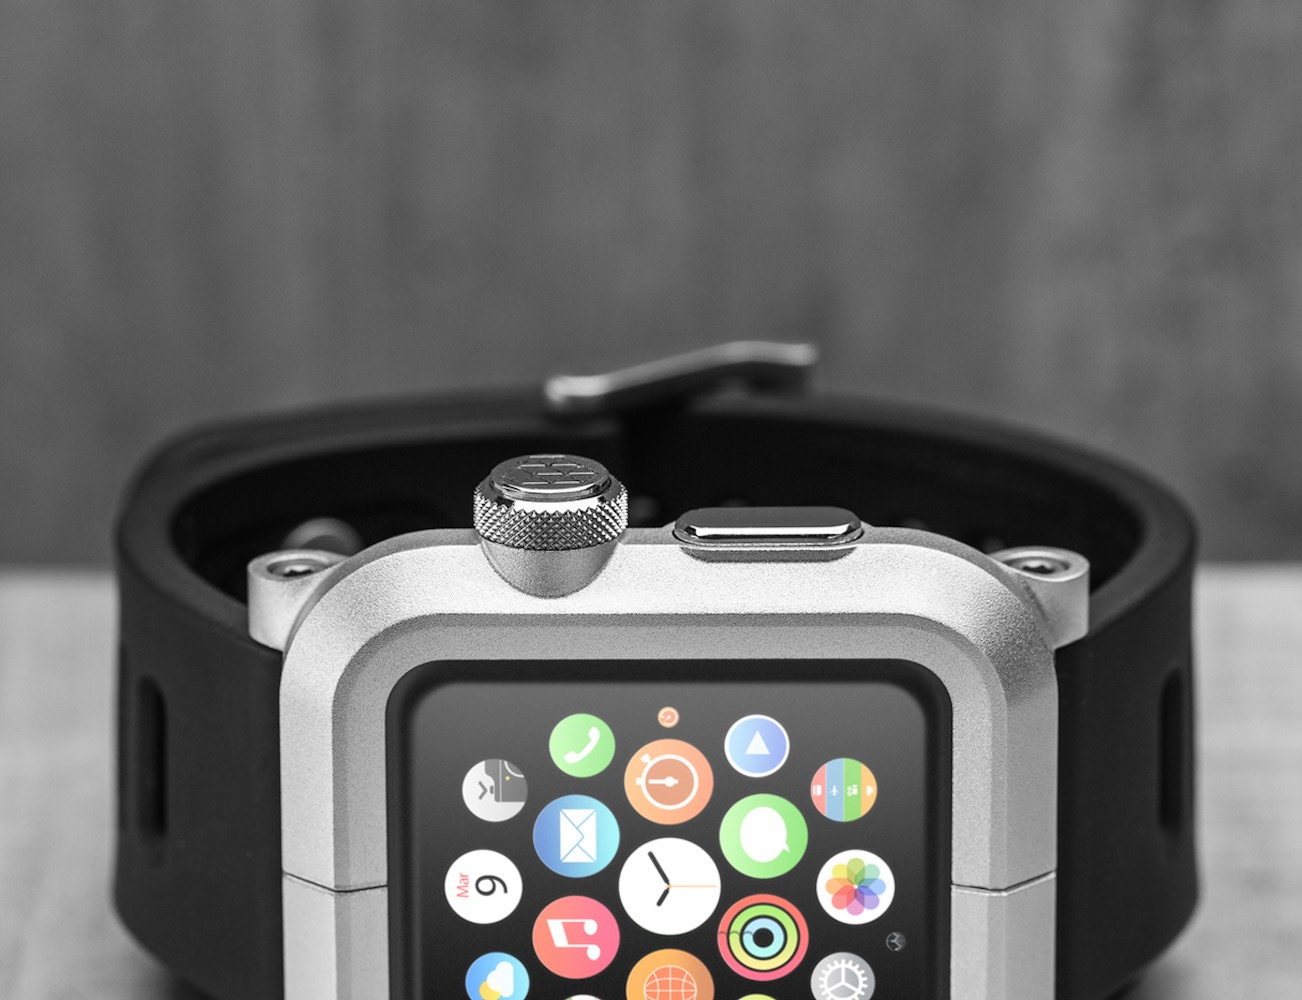 EPIK Aluminum Case and Silicone Band for Apple Watch by Lunatik